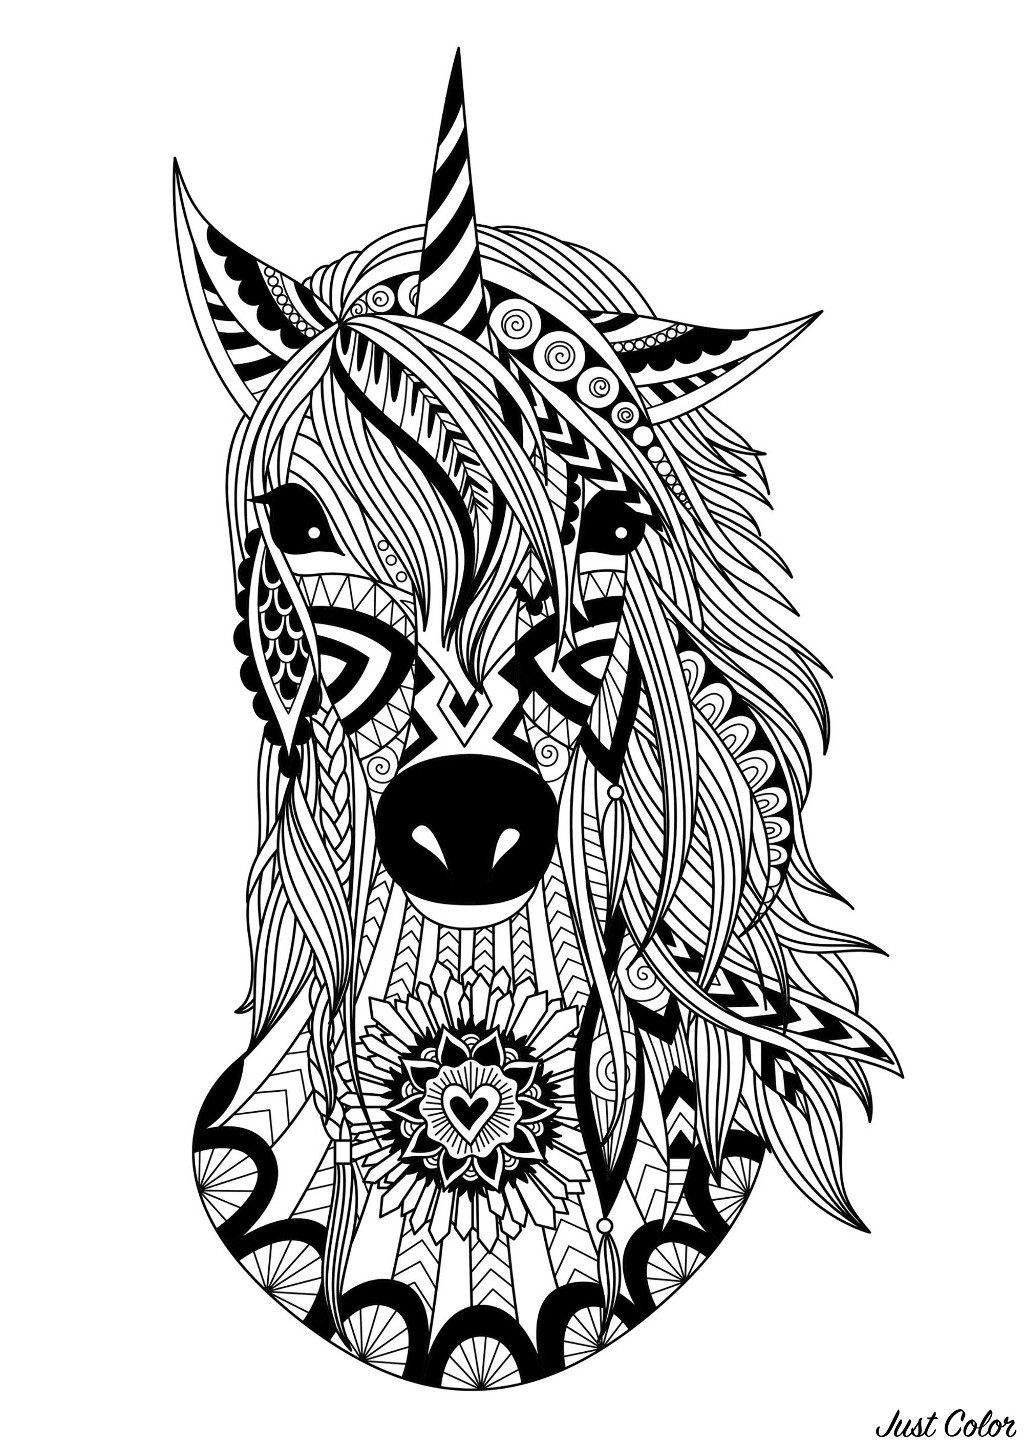 Tête de licorne au style Zentangle